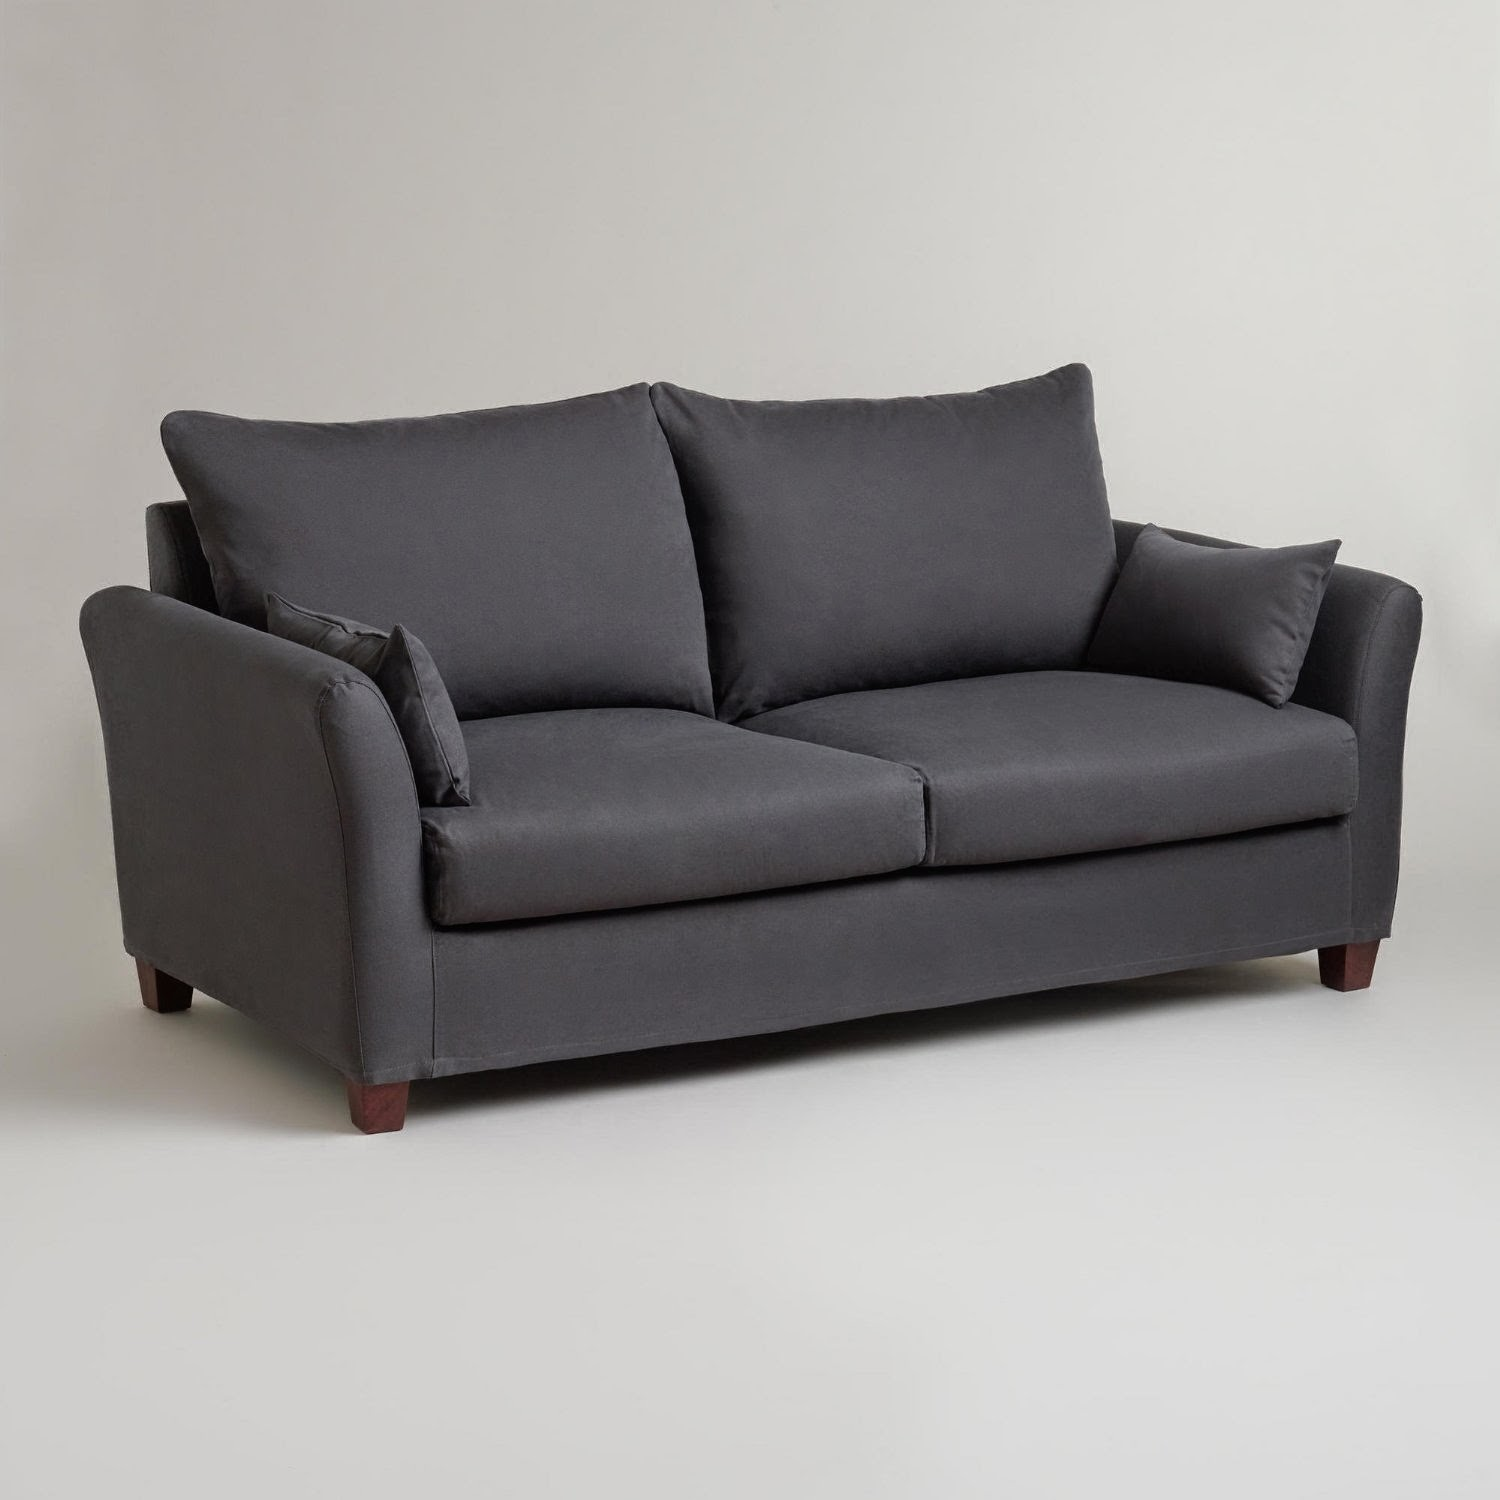 charcoal gray sofa bed small l shaped size grey couch